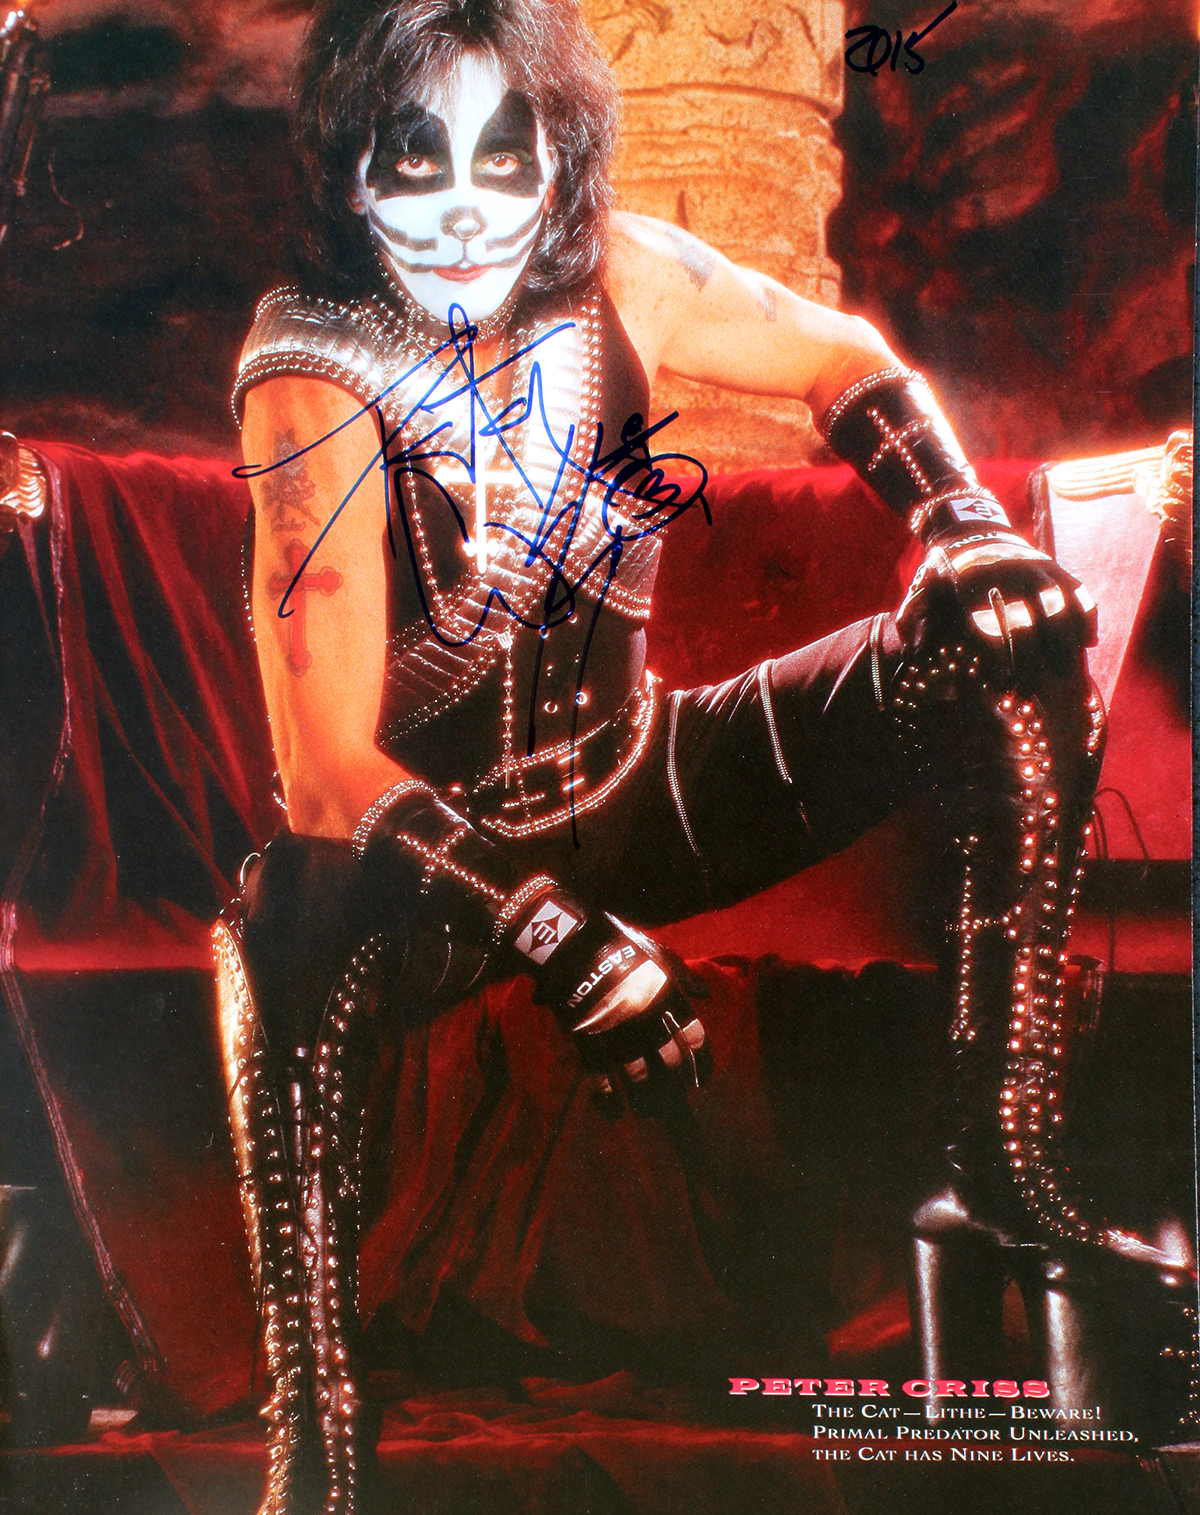 Peter Criss Photo